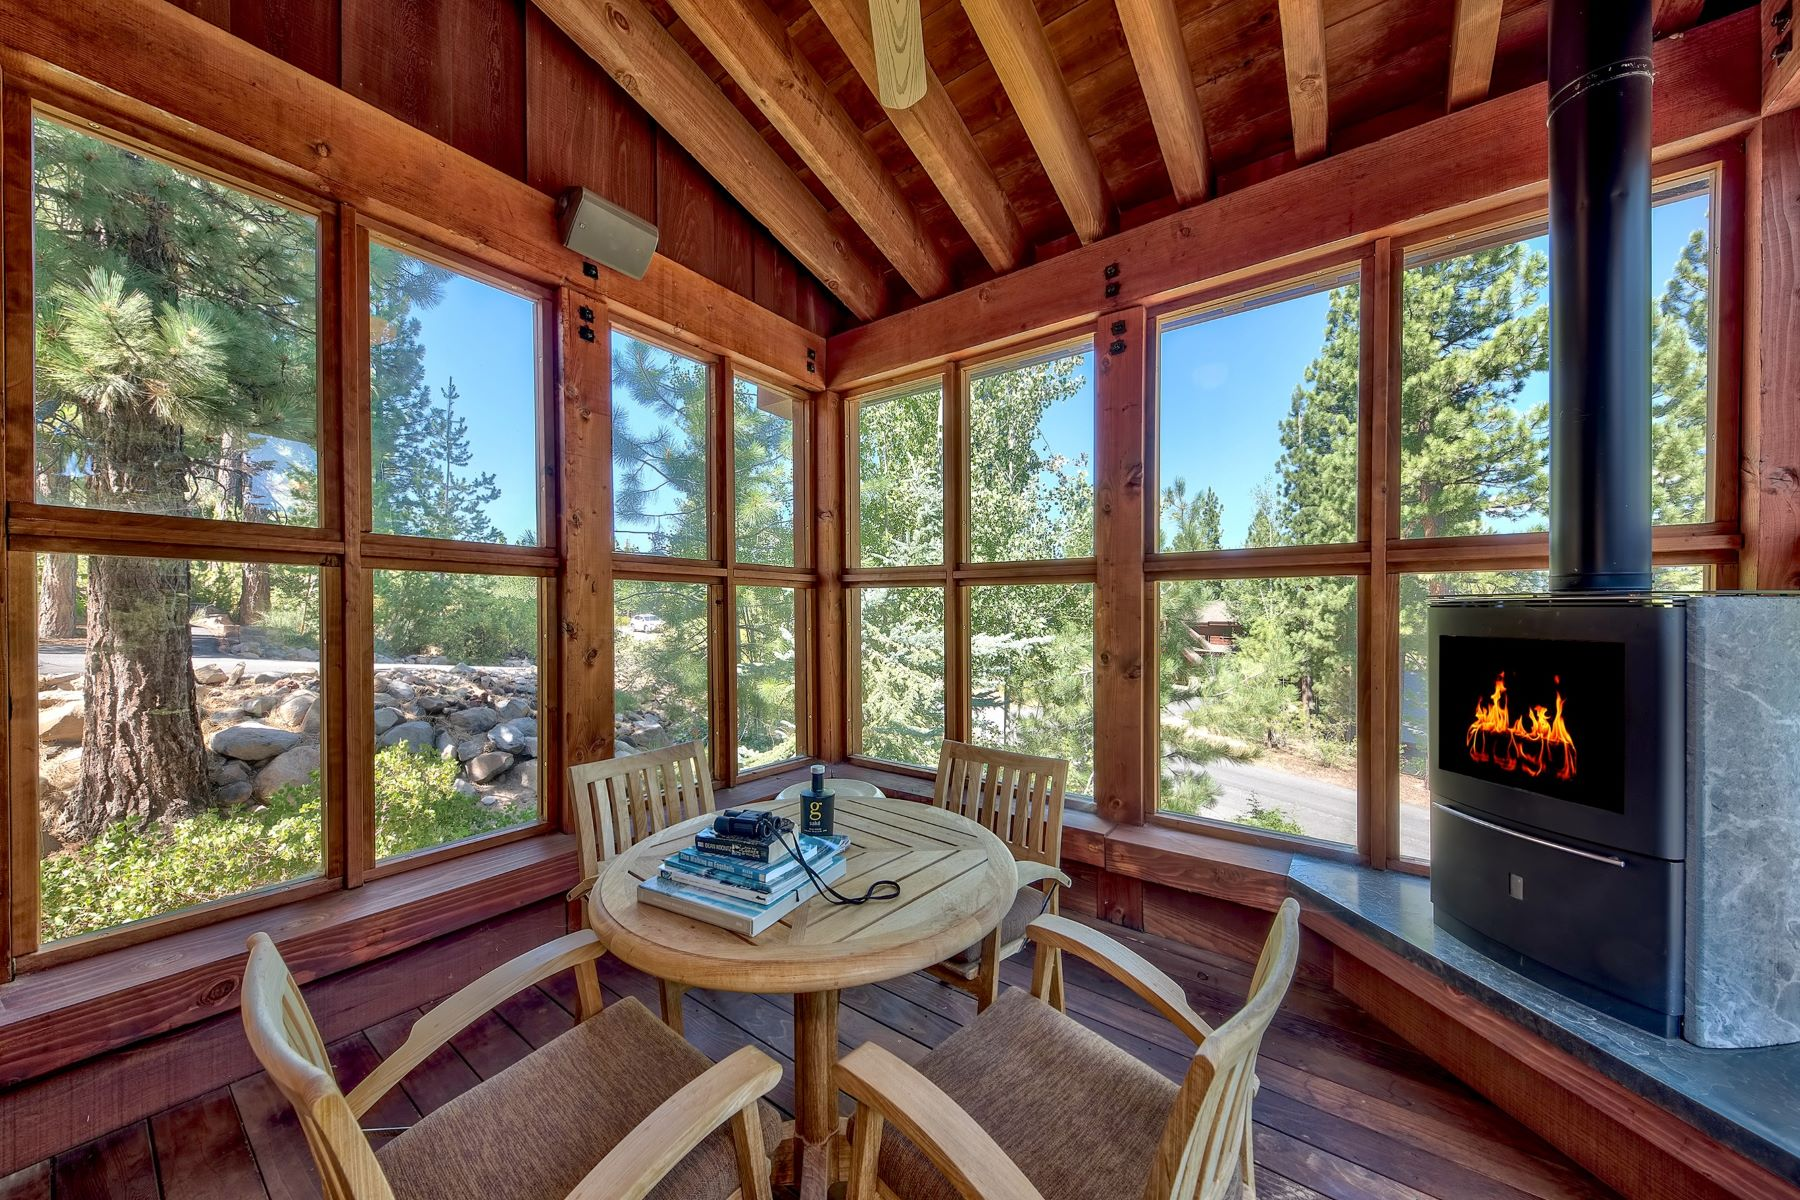 Additional photo for property listing at 1736 Grouse Ridge Road, Truckee 1736 Grouse Ridge Road Truckee, California 96161 United States